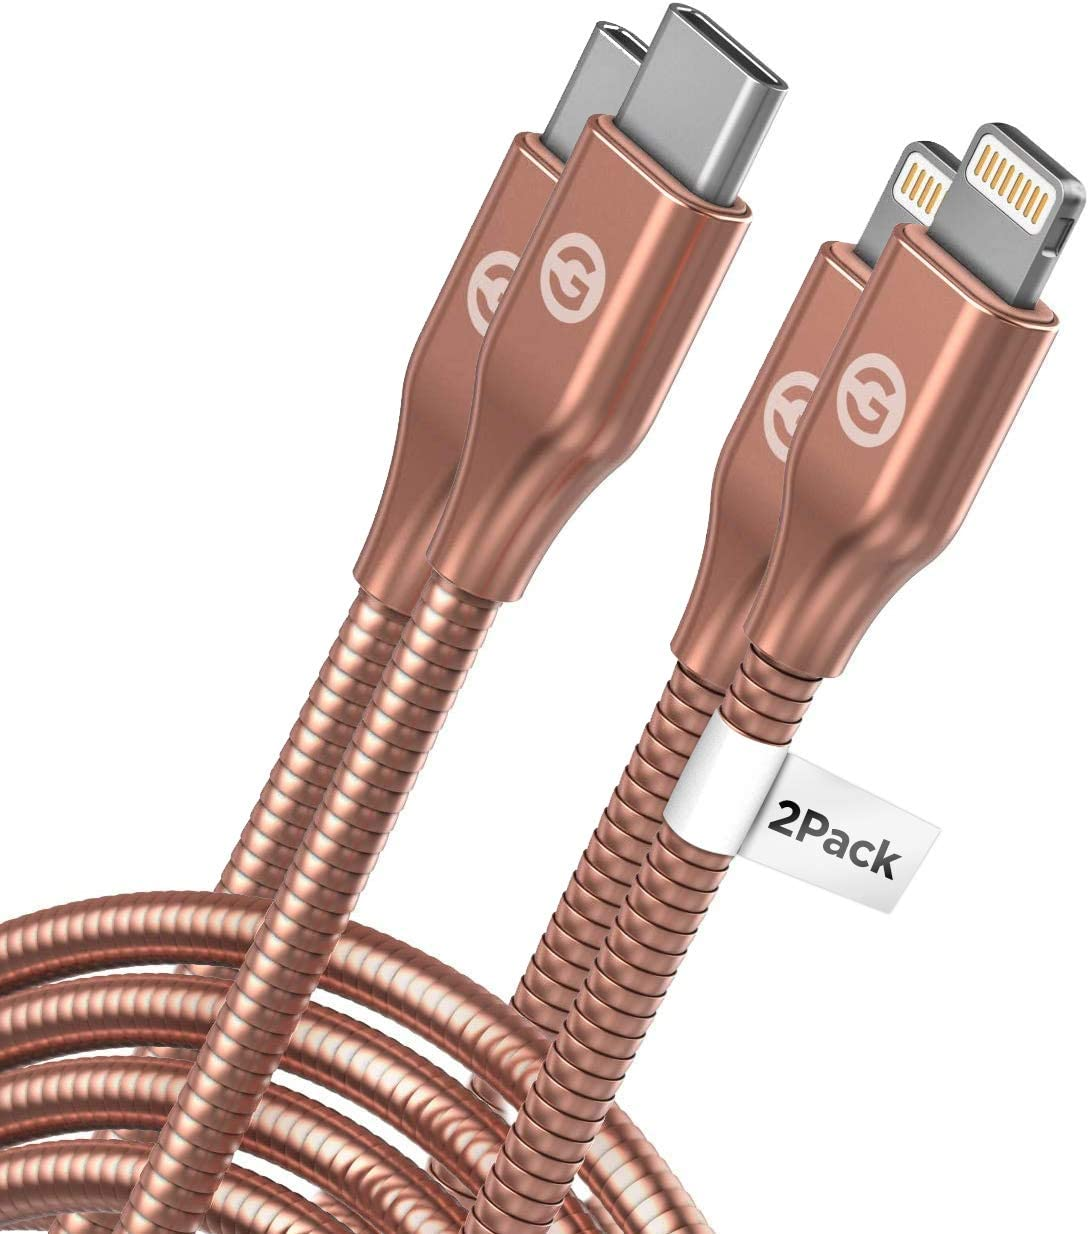 Galvanox (2 Pack) Apple MFi Certified Lightning to USB-C Charger Cables (Ultra-Durable) Braided Metal Cords Compatible with iPhone 12 Pro Max/11/SE/Xs/XR (Rose Gold)